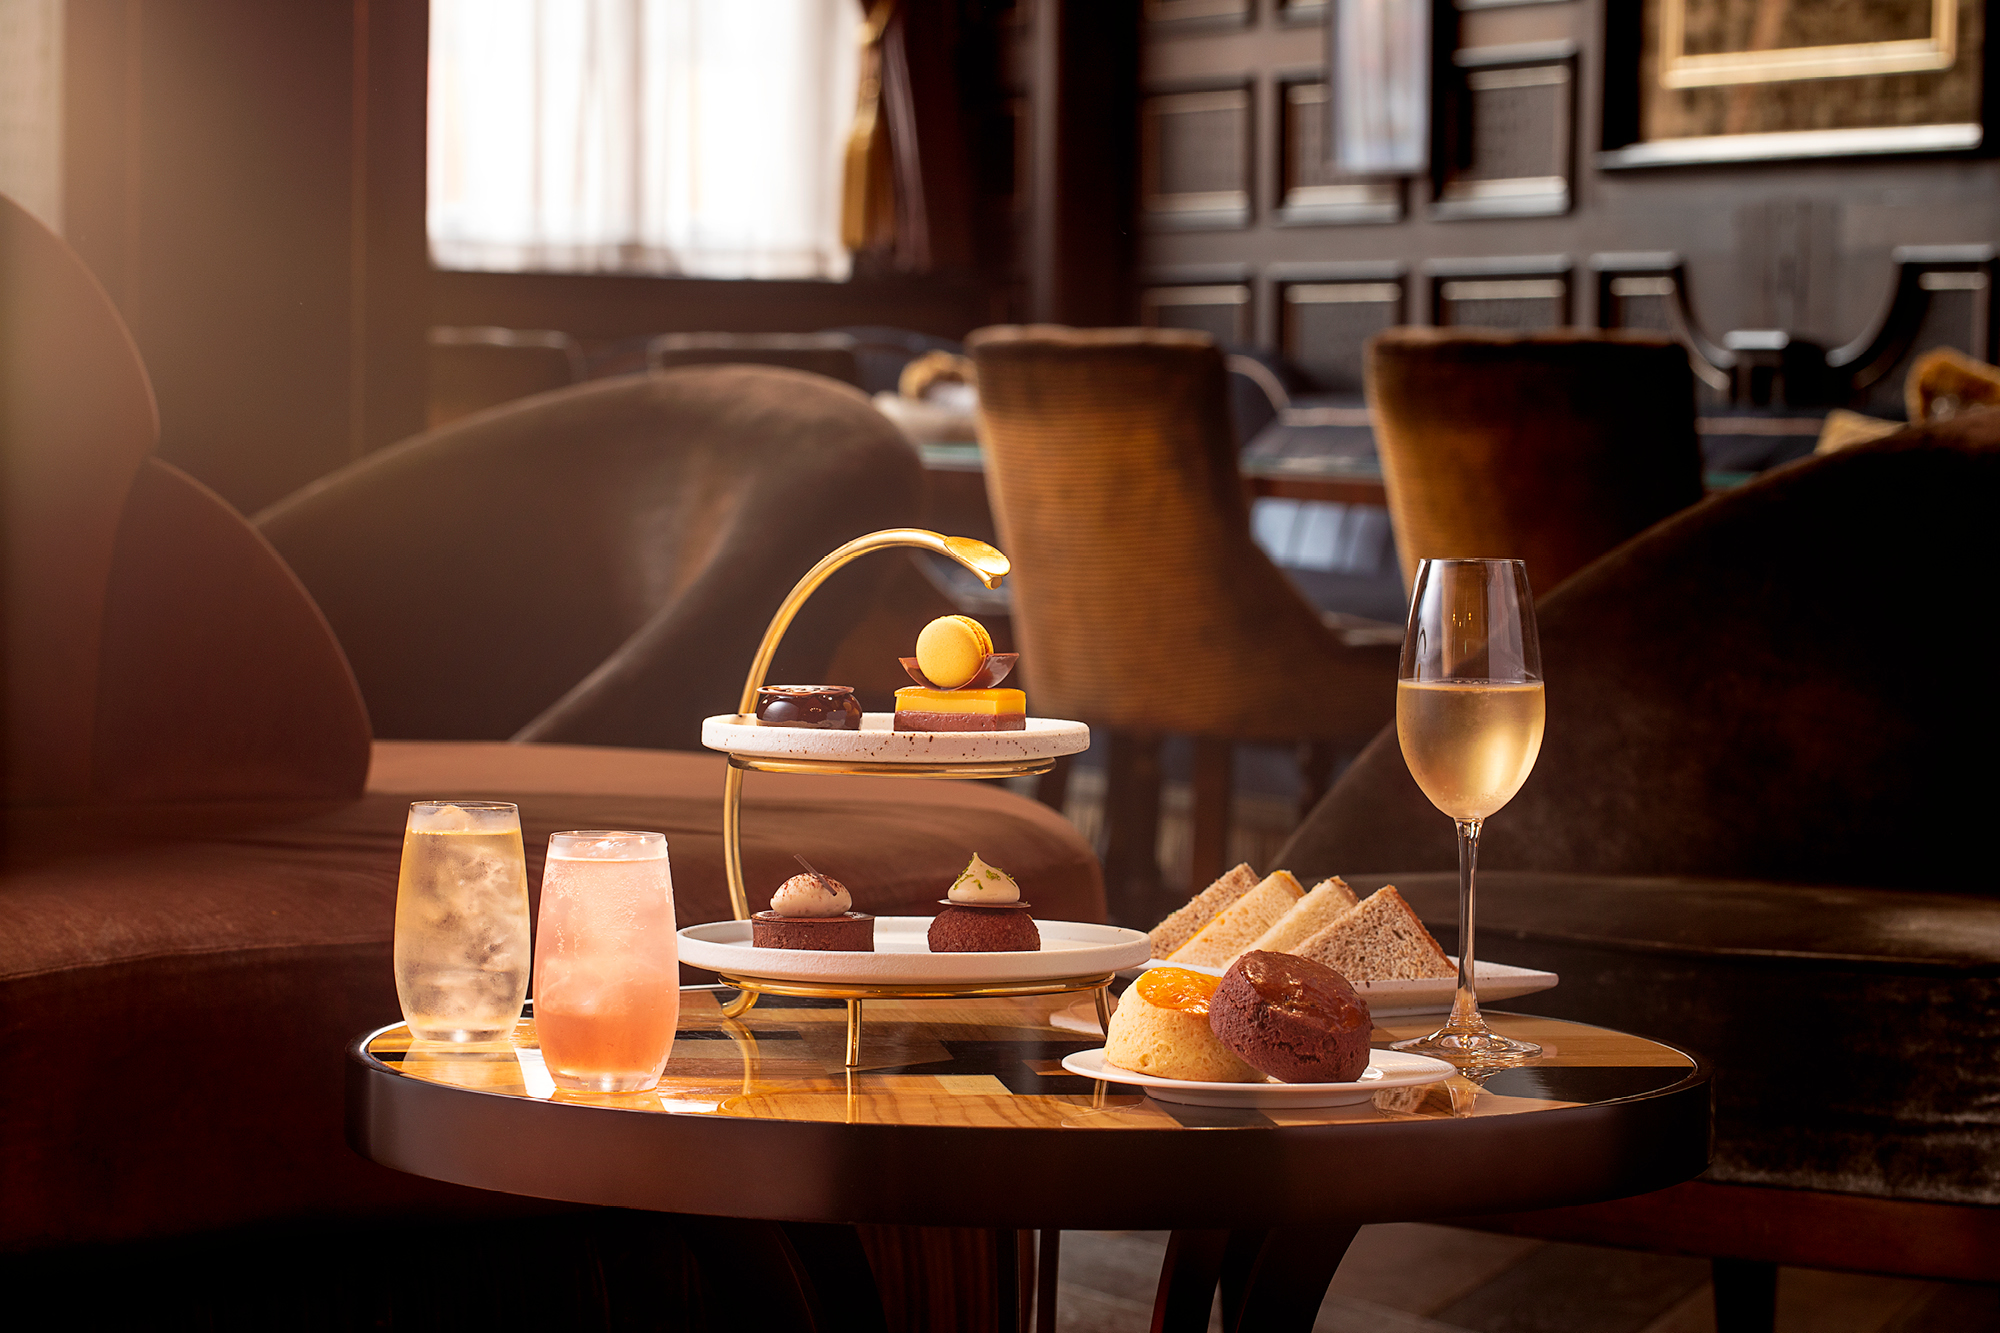 The Do You Like Chocolate? afternoon tea at the Kimpton Fitzroy London hotel